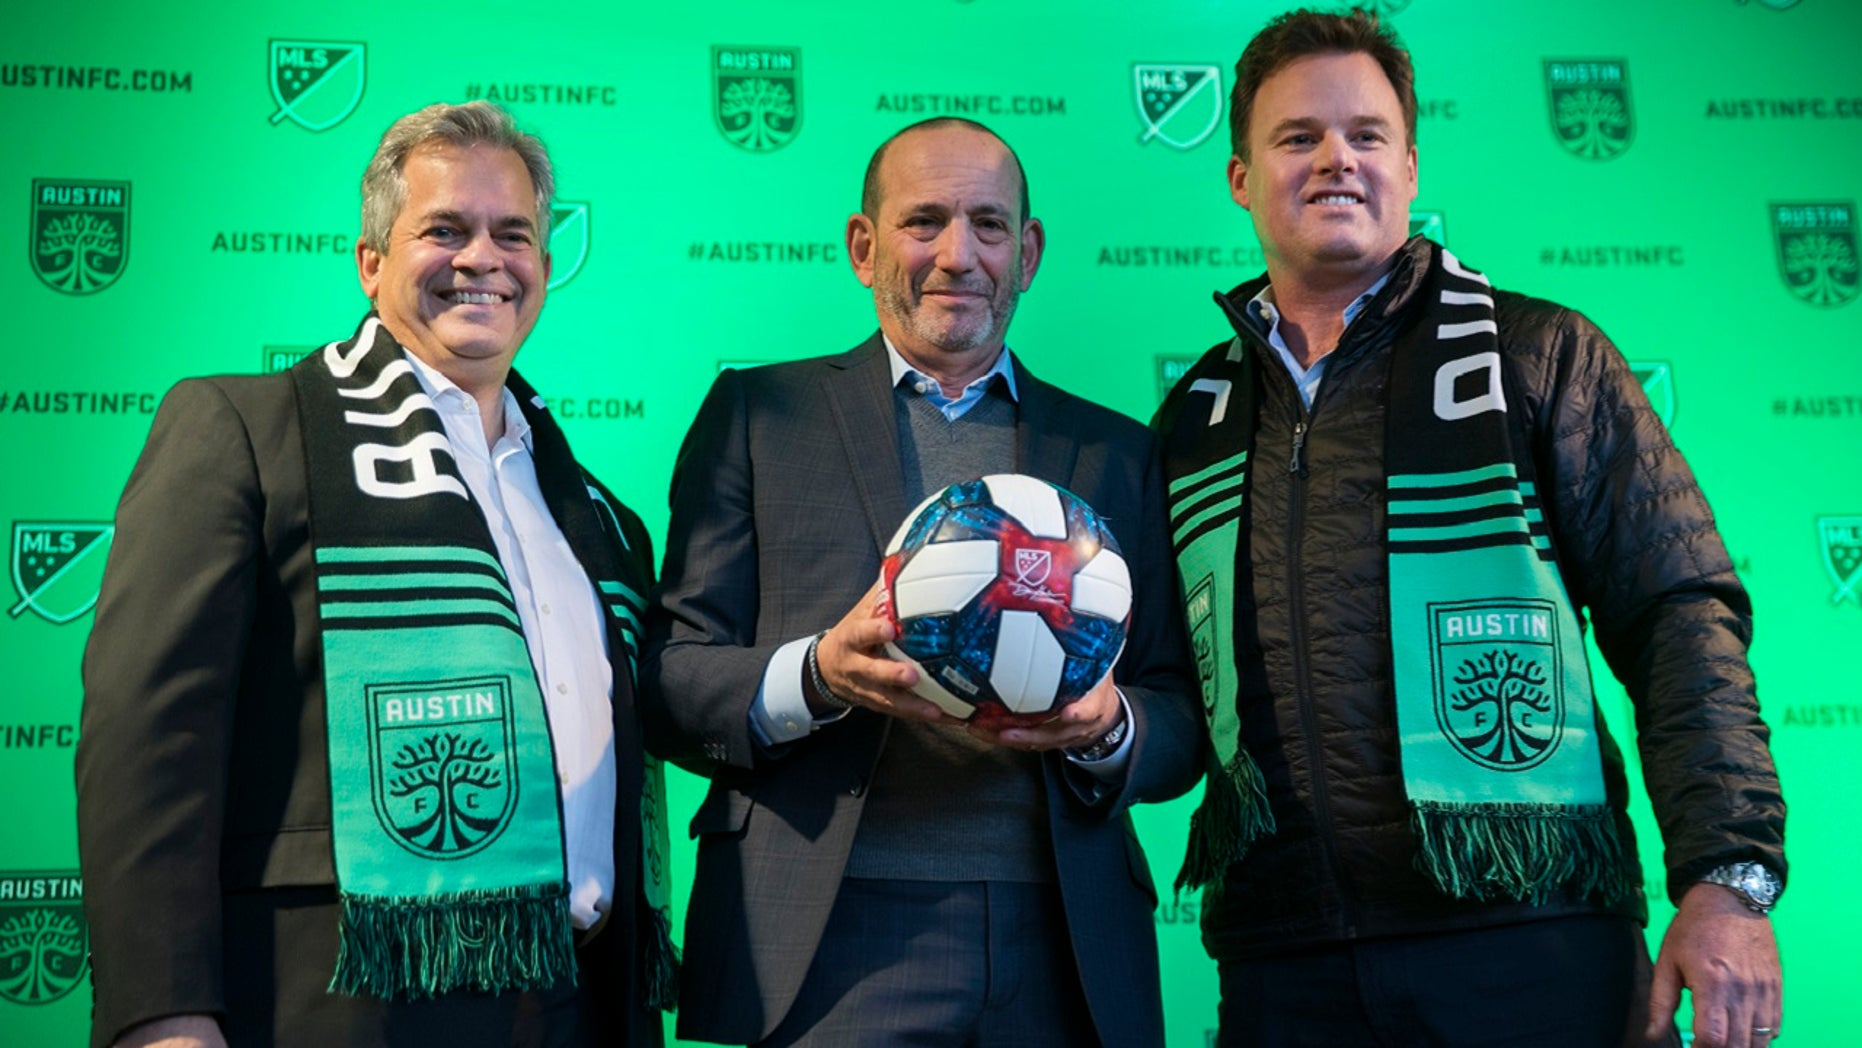 Austin Mayor Steve Adler, left, Major League Soccer Commissioner Don Garber and Austin majority owner Anthony Precourt, after the official announcement that Austin will be an expansion franchise for the 2021 season, Tuesday, Jan. 15, 2019 in Austin, Texas.